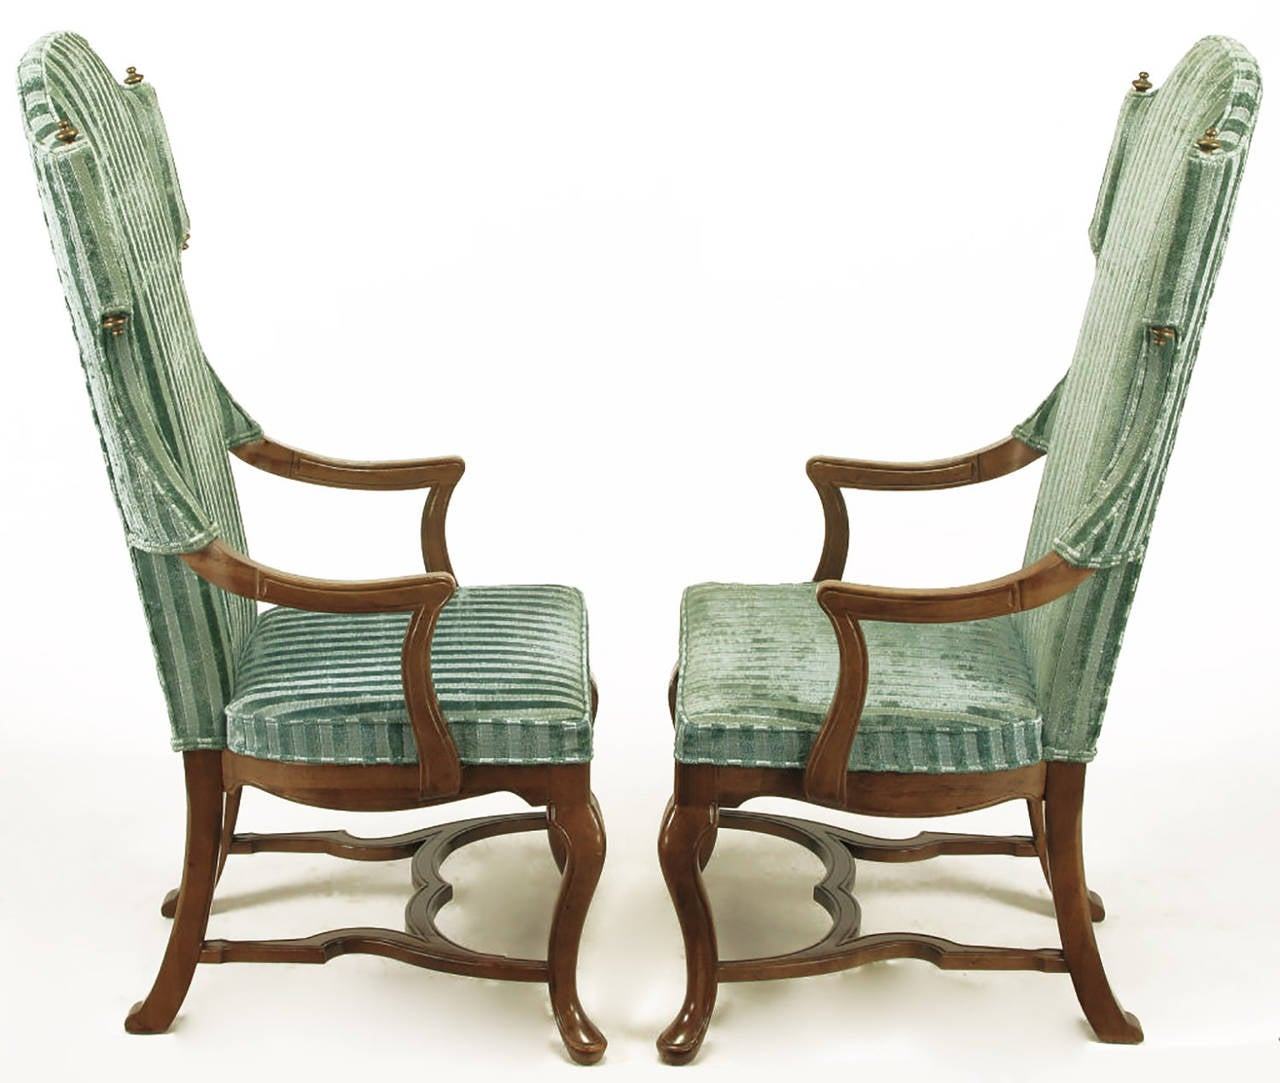 Pair of Tall Wing Chairs in Cut Velvet with Brass Finials by Jim Peed In Good Condition For Sale In Chicago, IL